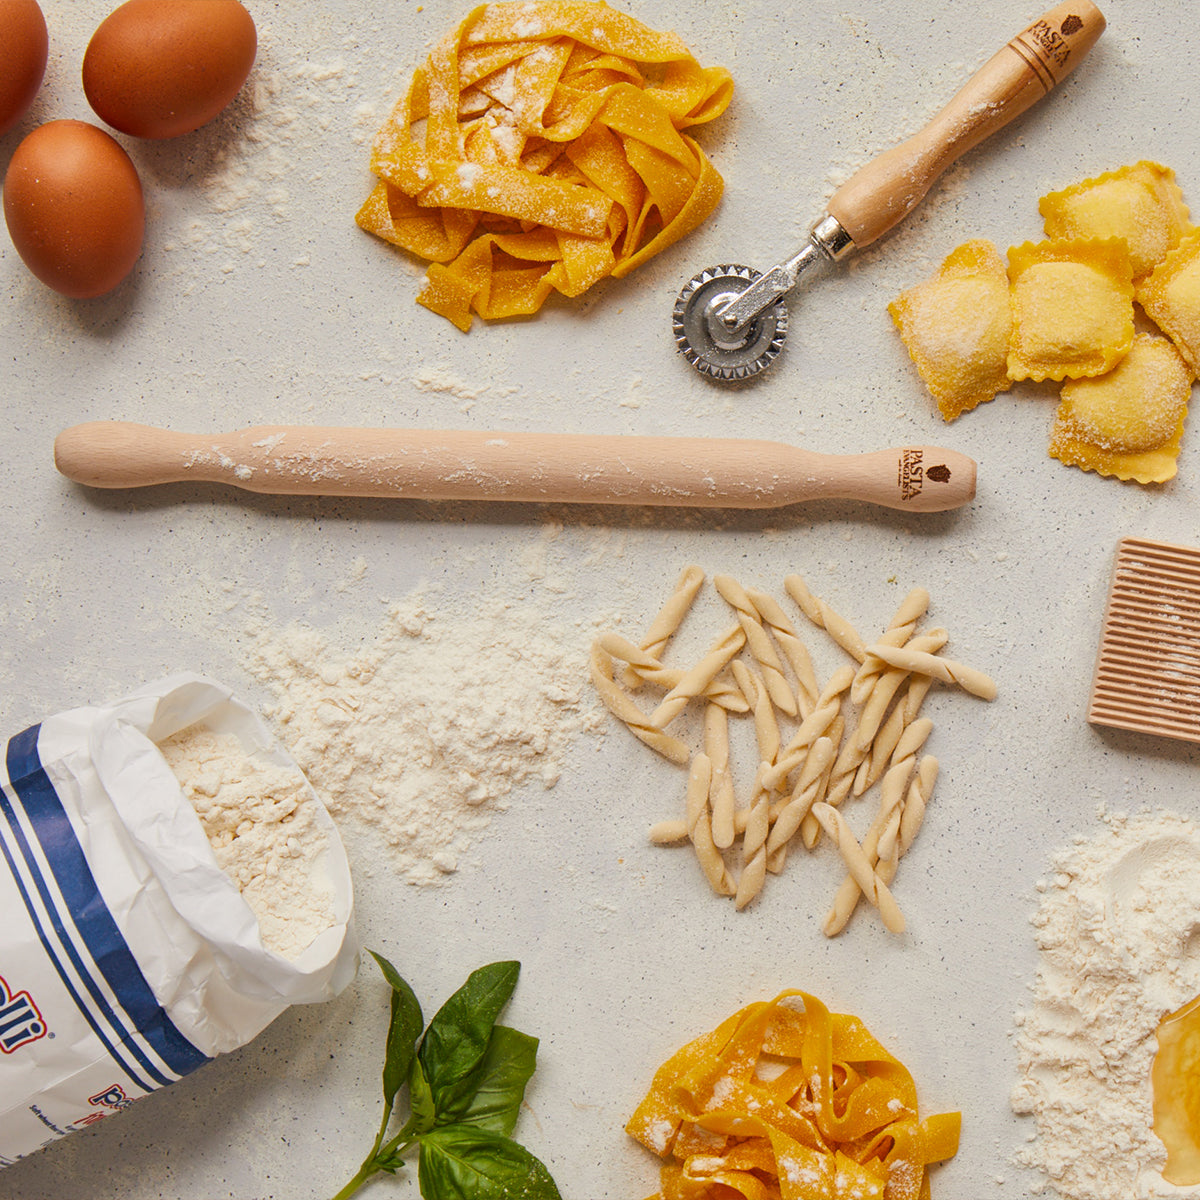 Tools you need to make pasta from scratch